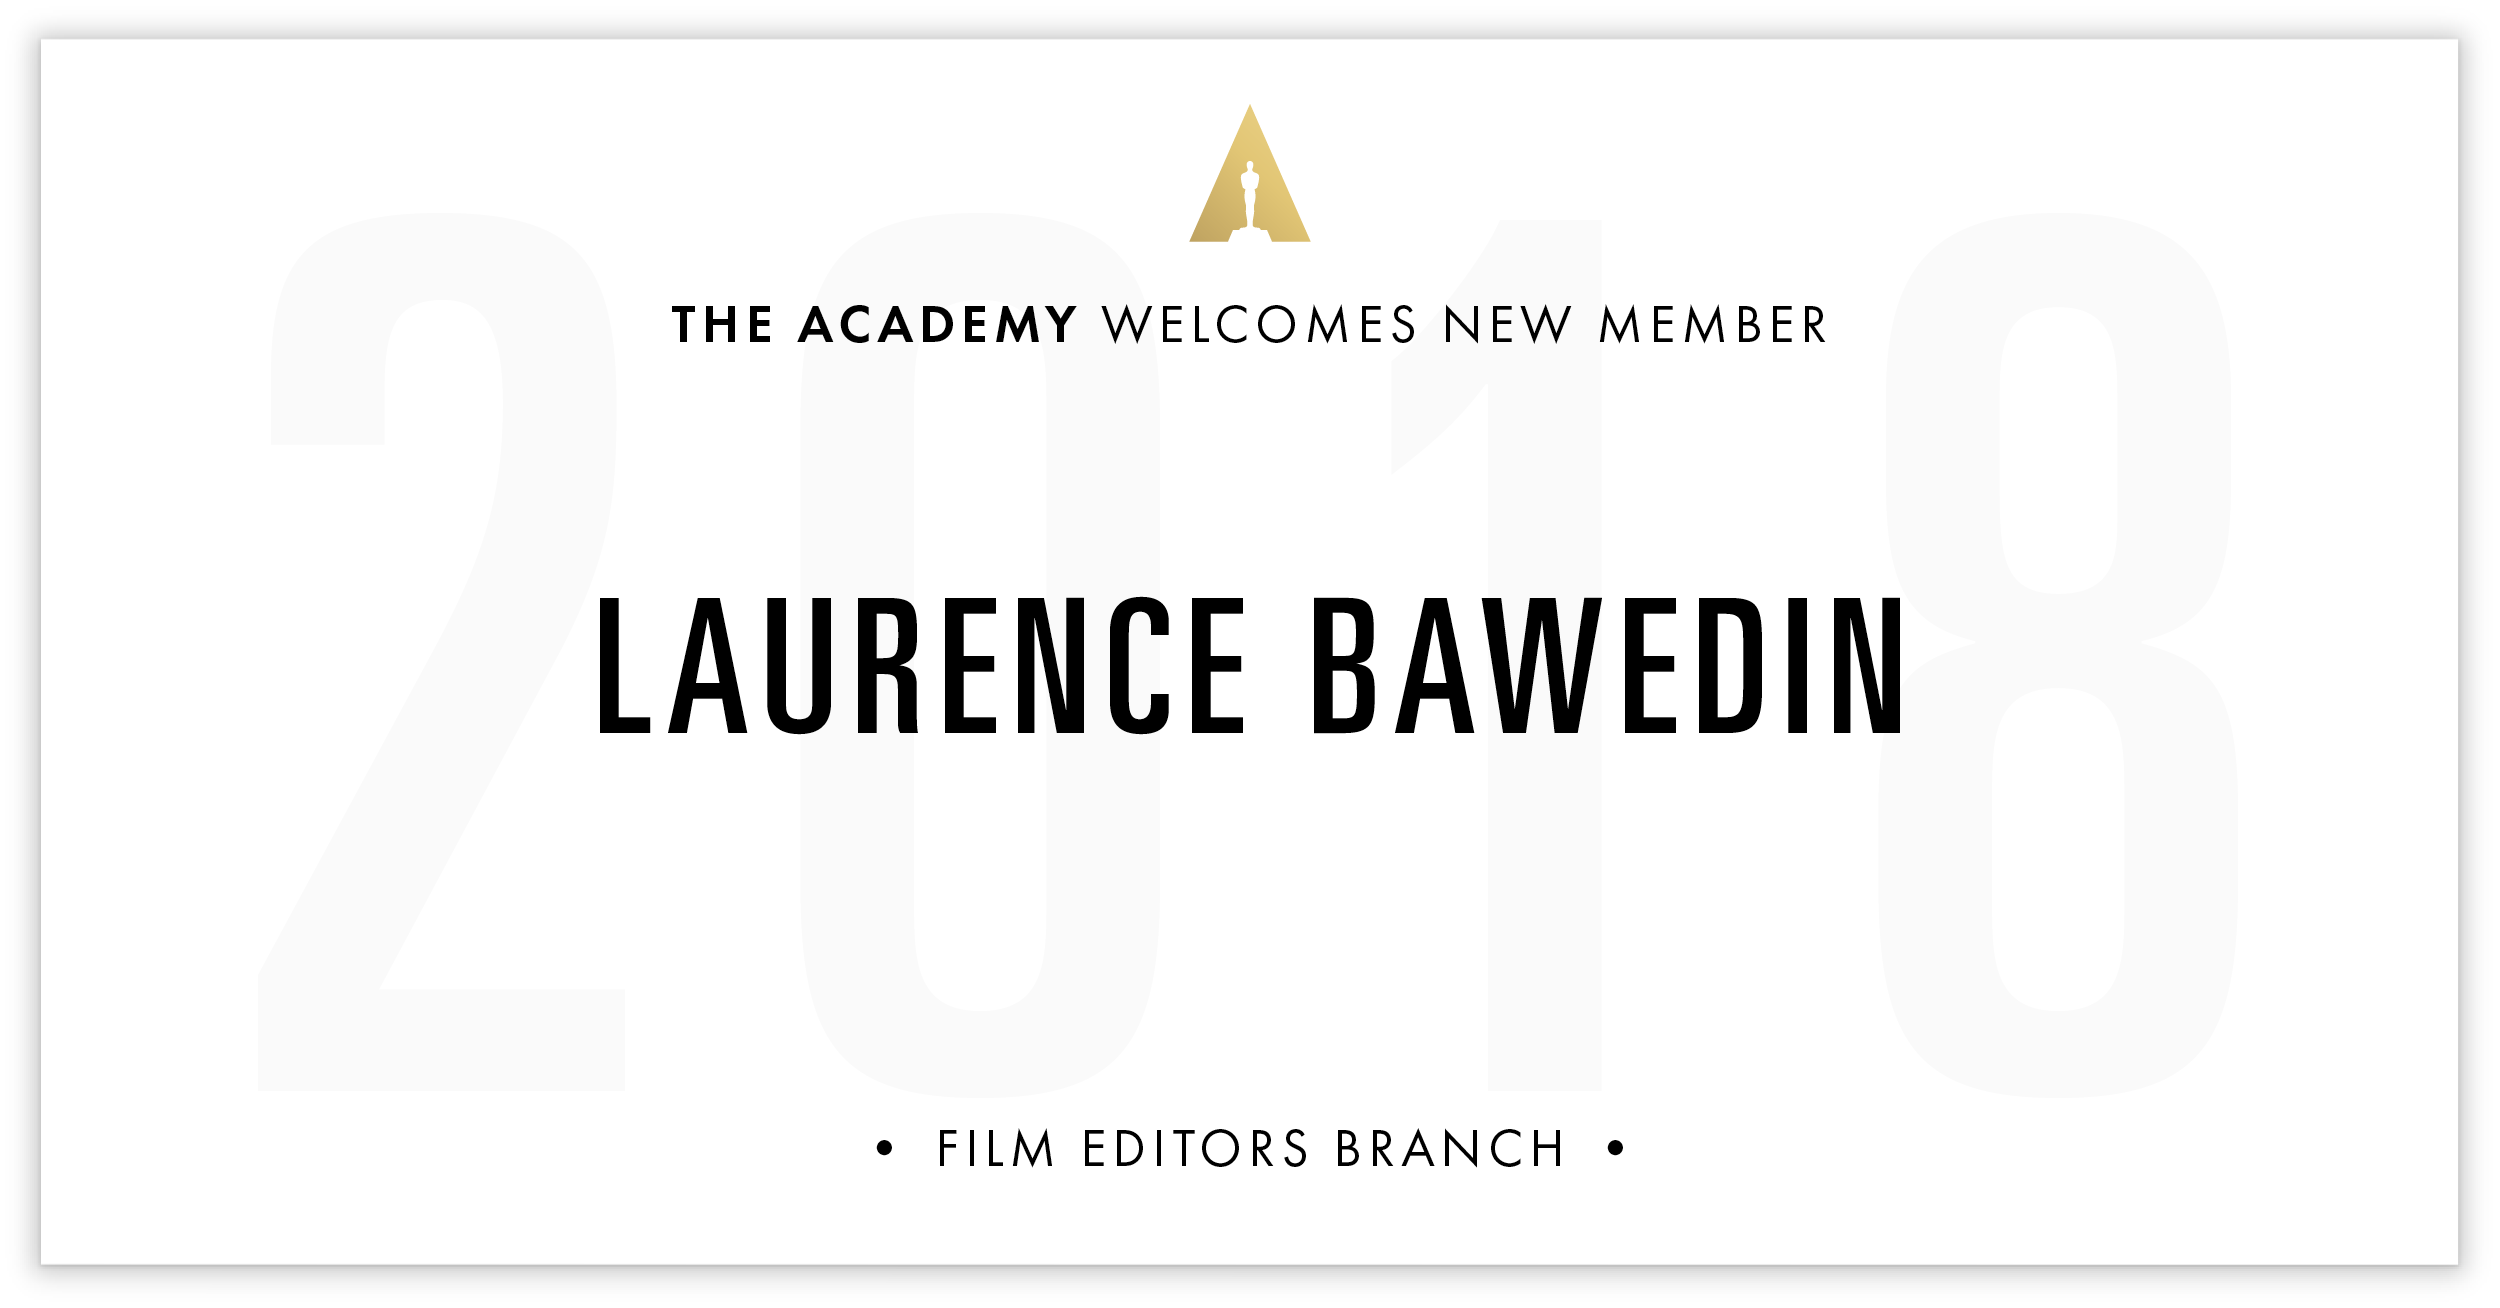 Laurence Bawedin is invited!